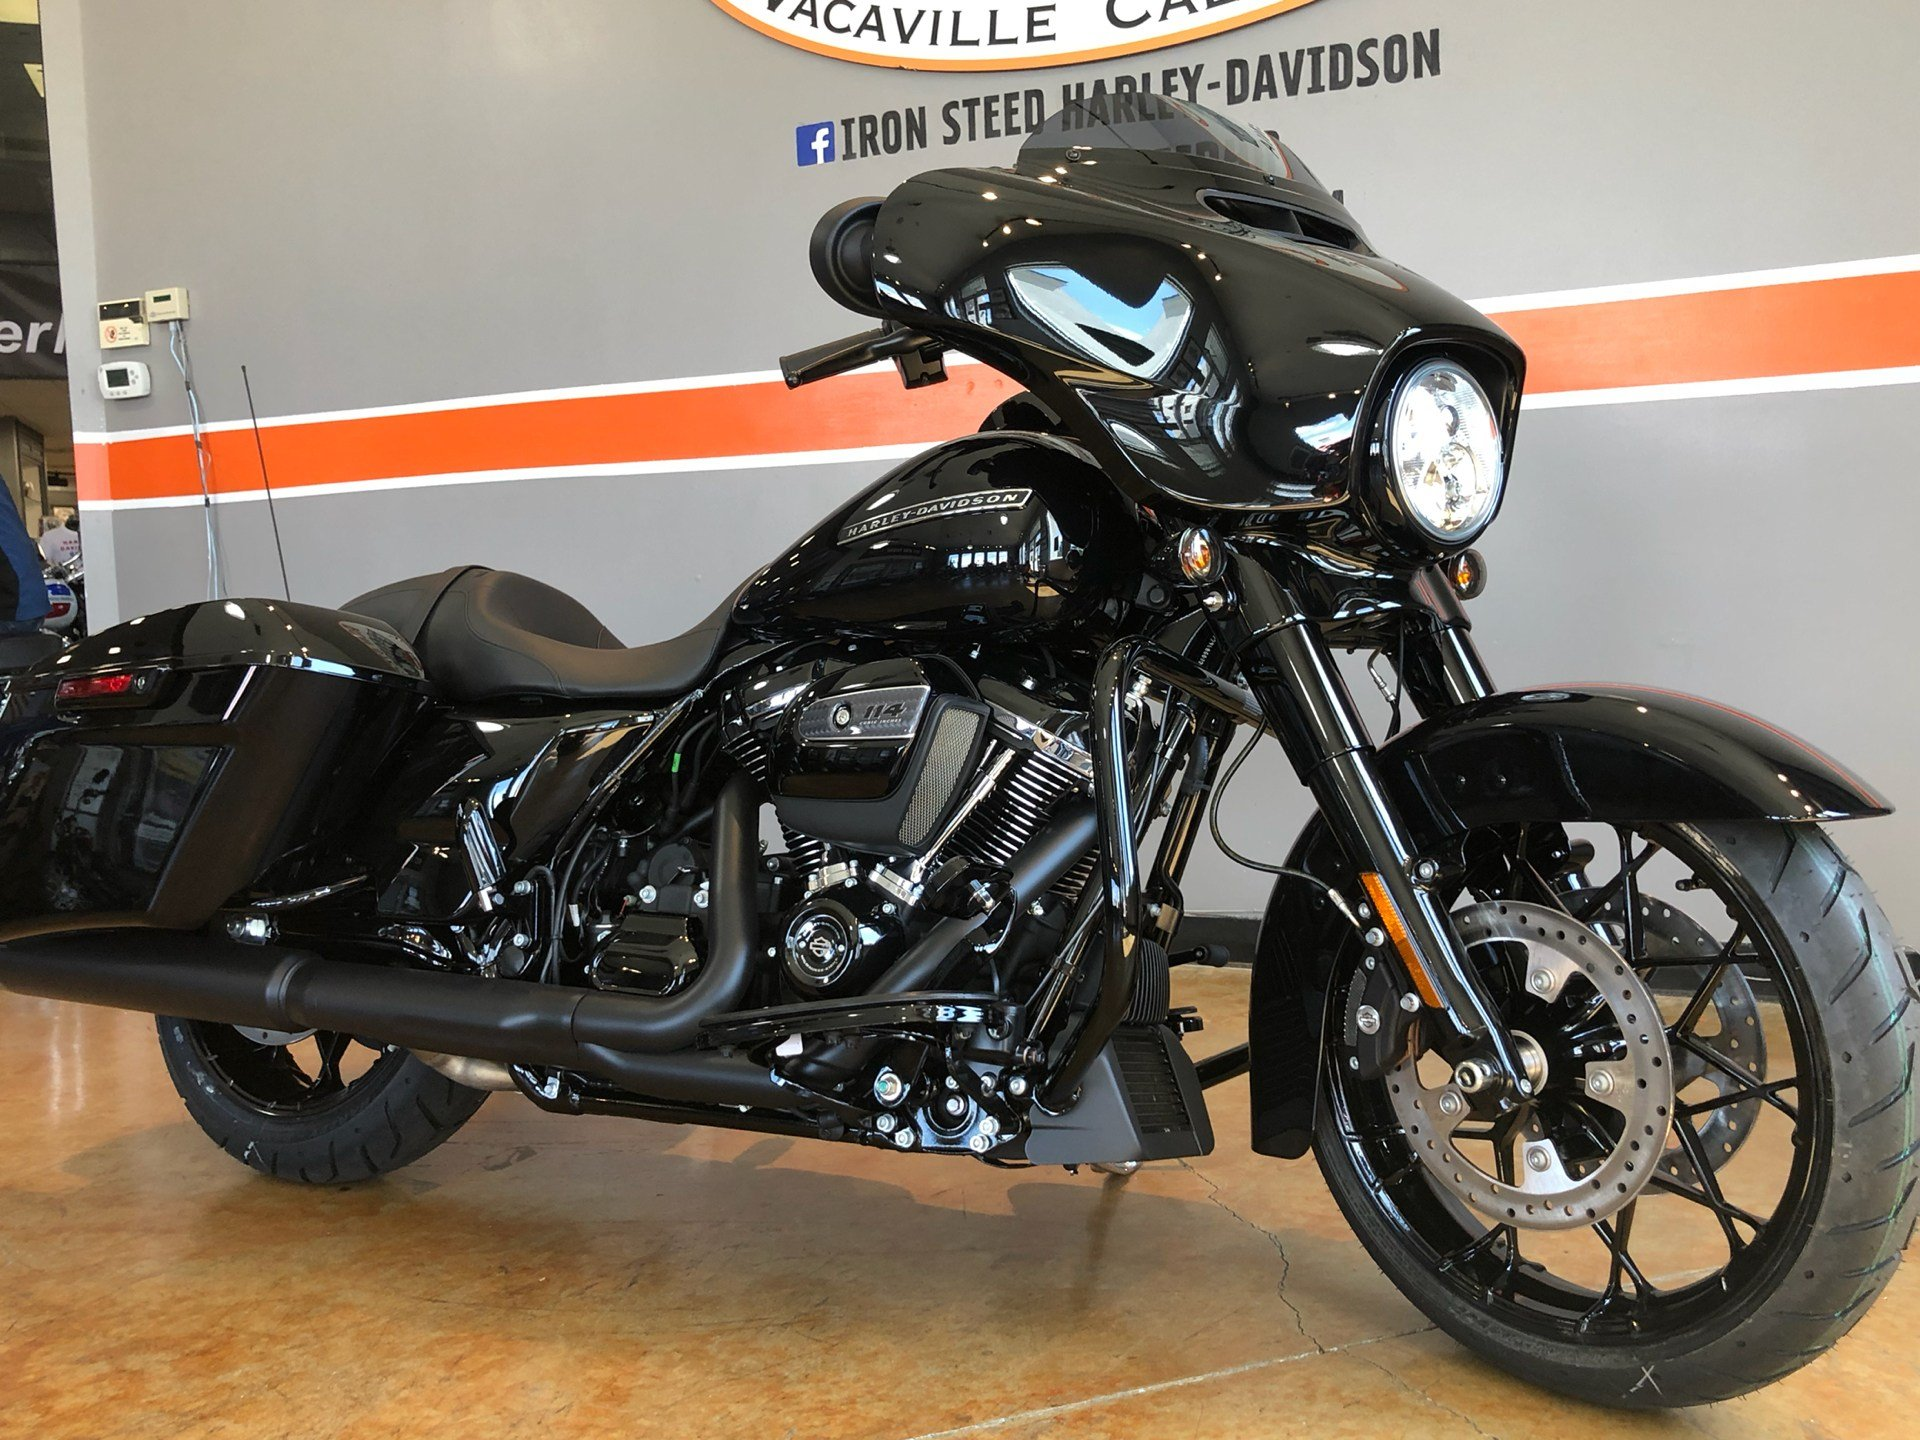 2020 Harley-Davidson Street Glide® Special in Vacaville, California - Photo 2